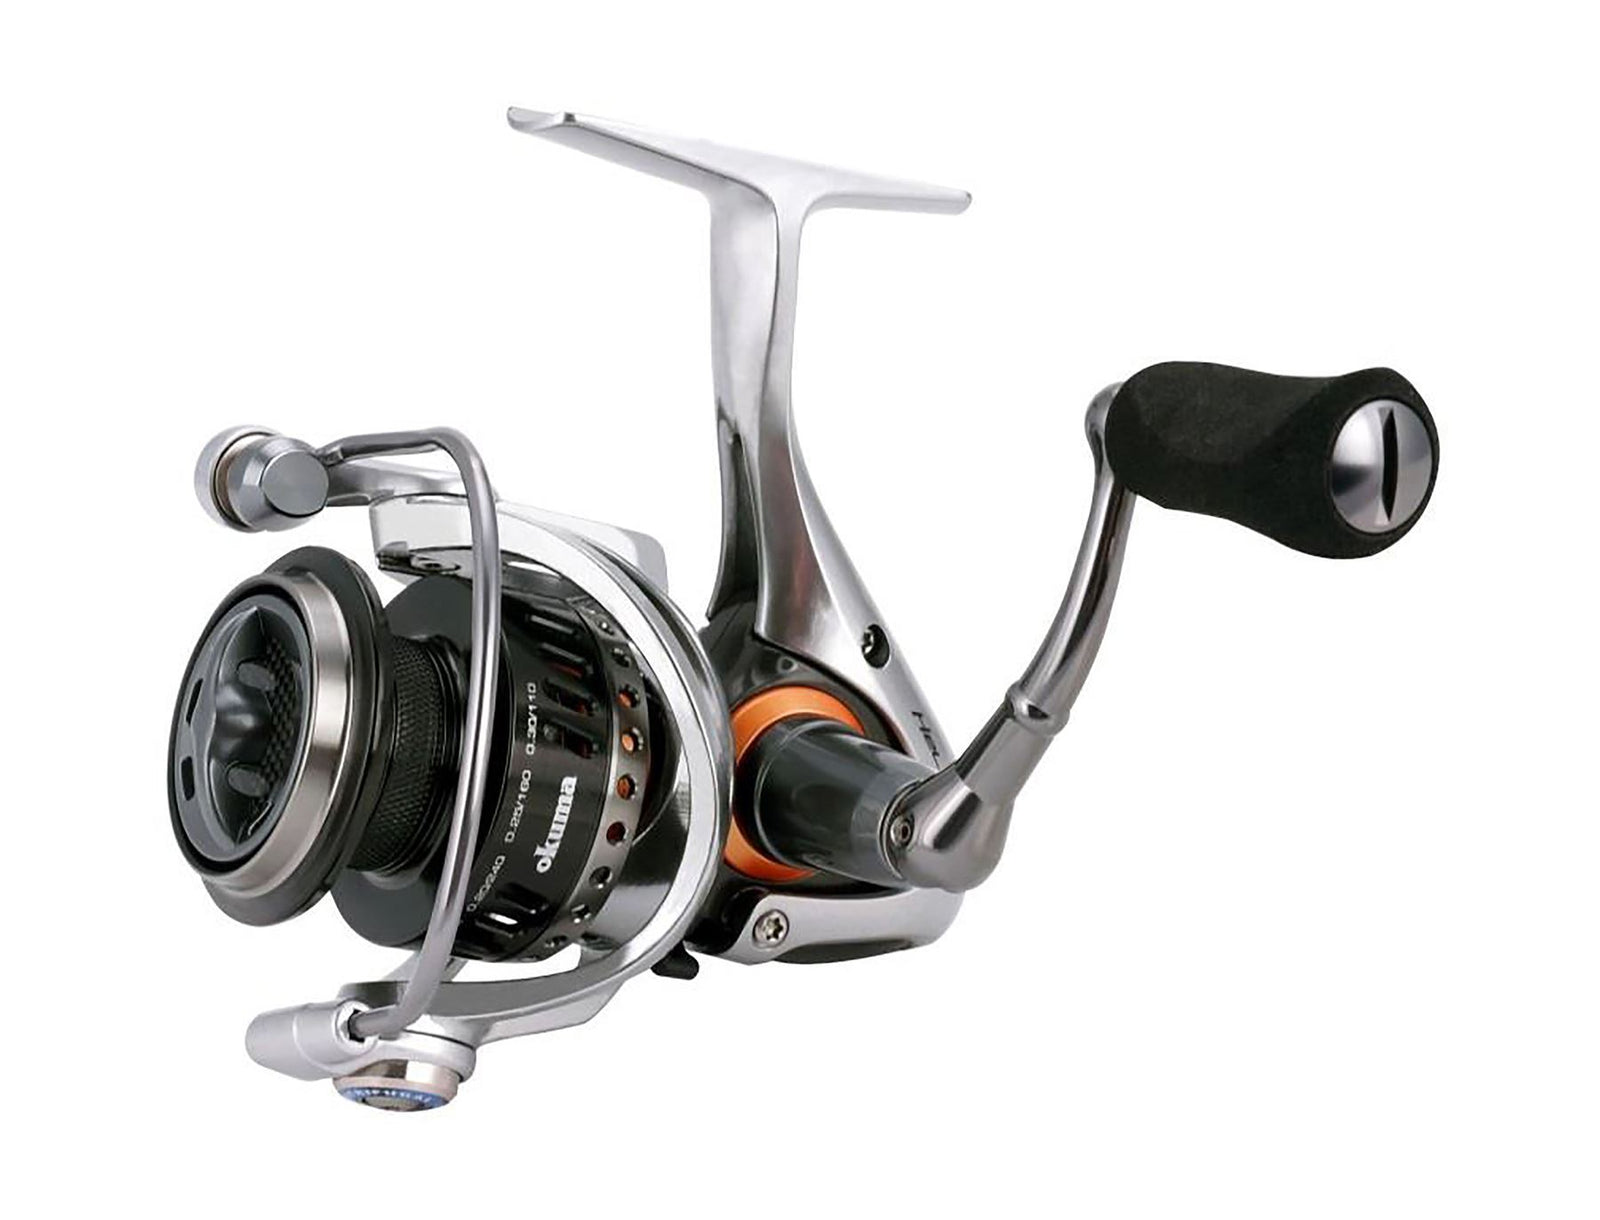 Okuma Helios HSX-30FD 8+1bb Spinning Reel - reid outdoors